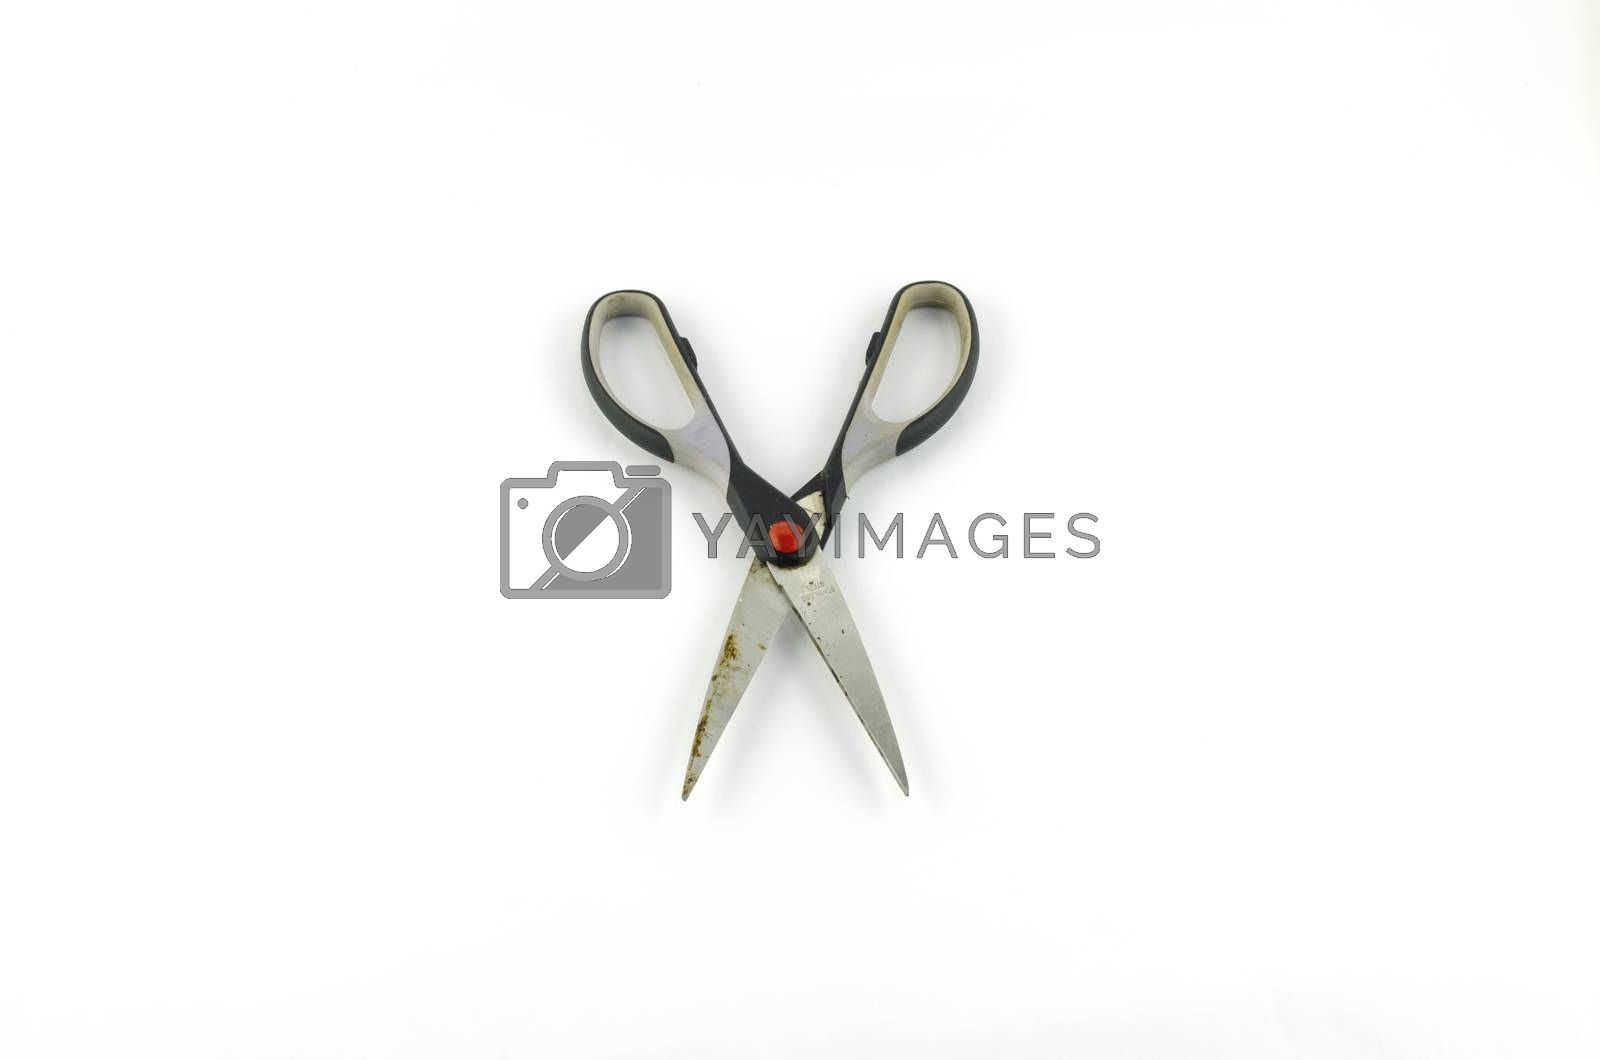 Scissors isolated on white background